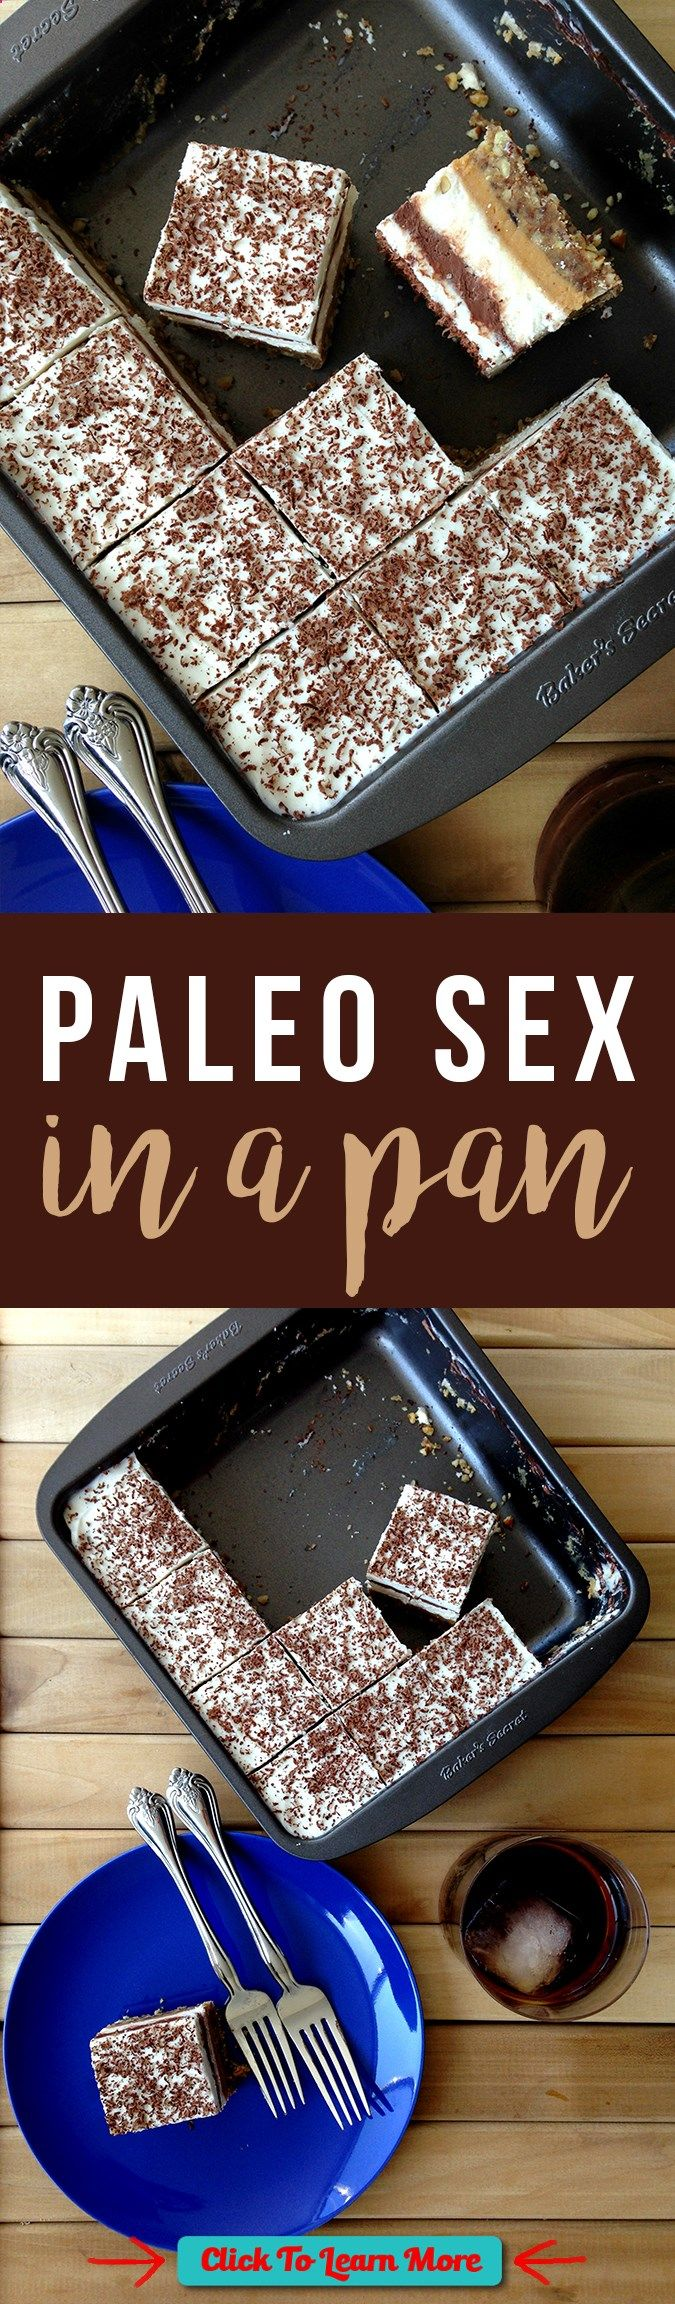 #FastestWayToLoseWeight by EATING, Click to learn more, Decadent layered Paleo Sex in a Pan is a memorable treat! Click to read the recipe or pin for later. GrokGrub.com , #HealthyRecipes, #FitnessRecipes, #BurnFatRecipes, #WeightLossRecipes, #WeightLossDiets